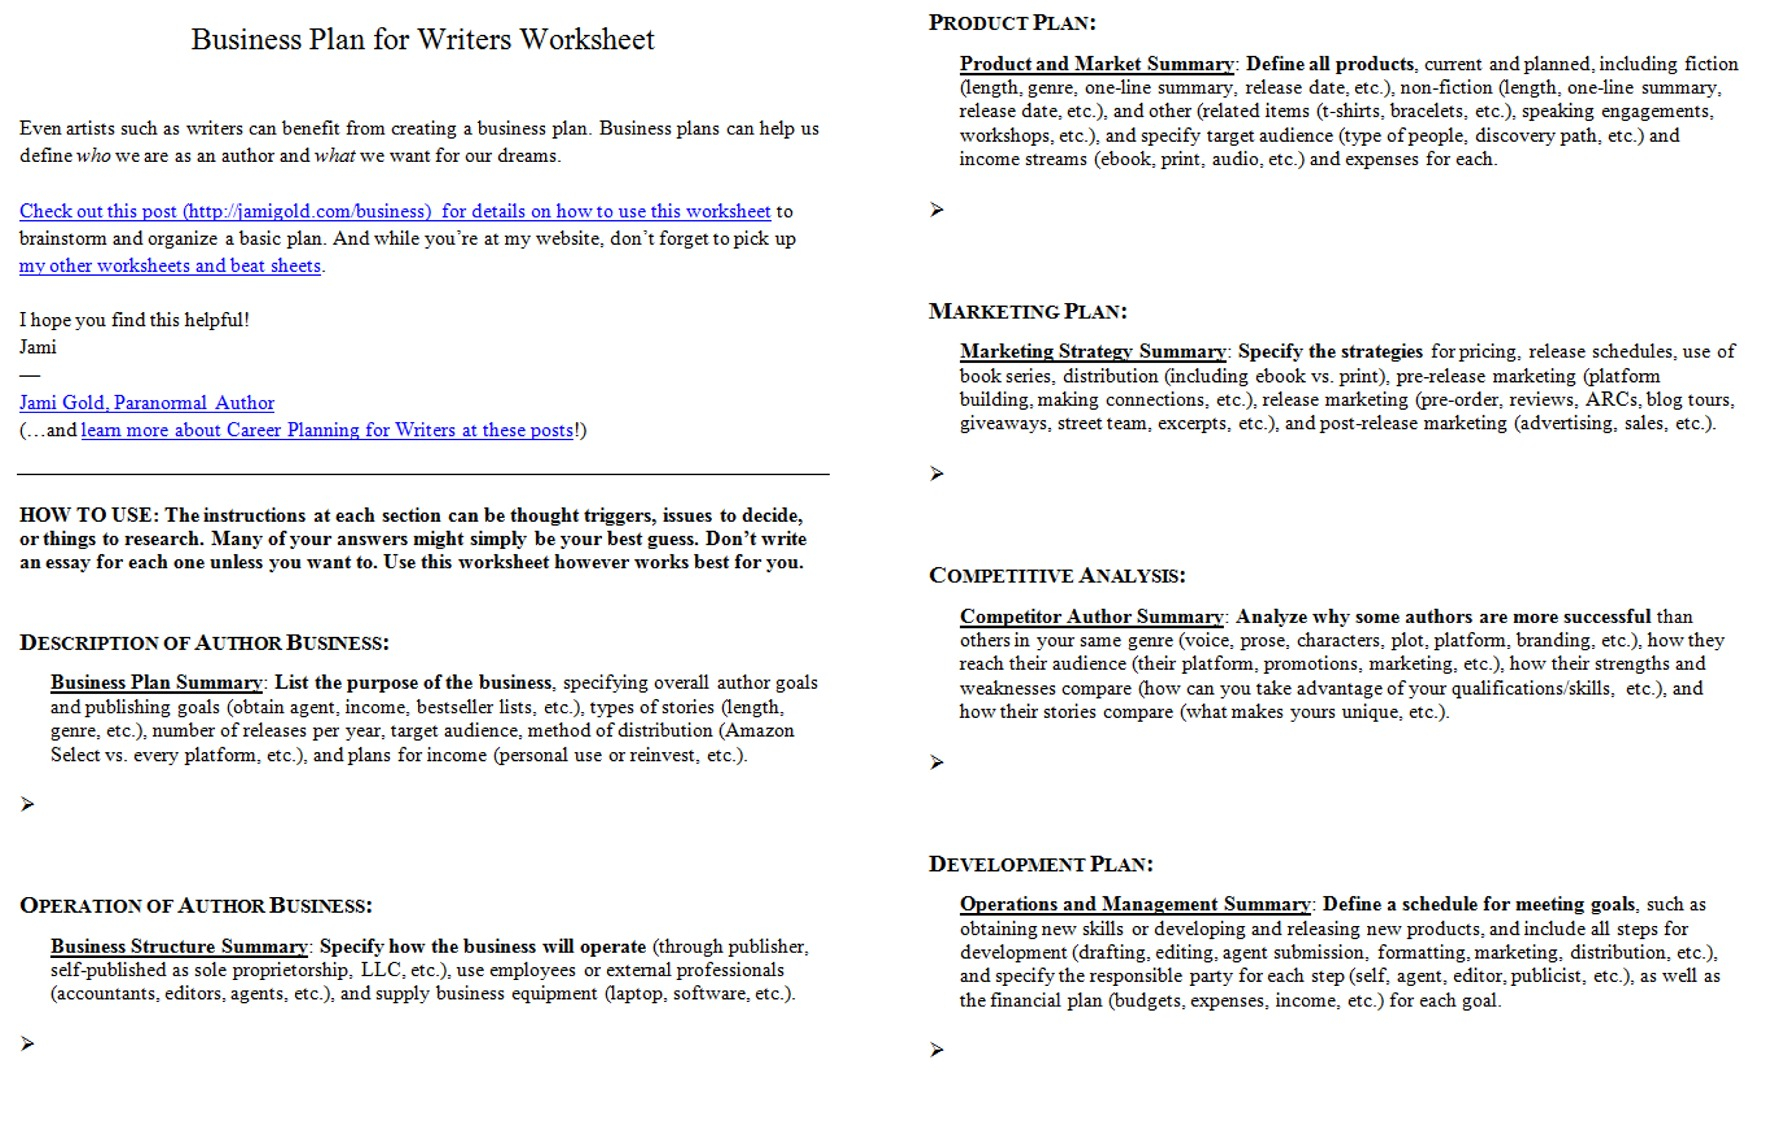 Aldiablosus  Personable Worksheets For Writers  Jami Gold Paranormal Author With Excellent Screen Shot Of Both Pages Of The Business Plan For Writers Worksheet With Nice Science Worksheets Free Printable Also Simple Comprehension Worksheets In Addition Circle Graph Worksheets Th Grade And Fifth Grade Grammar Worksheets Free As Well As Excel Save Worksheet Additionally Year  Maths Worksheets Australia From Jamigoldcom With Aldiablosus  Excellent Worksheets For Writers  Jami Gold Paranormal Author With Nice Screen Shot Of Both Pages Of The Business Plan For Writers Worksheet And Personable Science Worksheets Free Printable Also Simple Comprehension Worksheets In Addition Circle Graph Worksheets Th Grade From Jamigoldcom